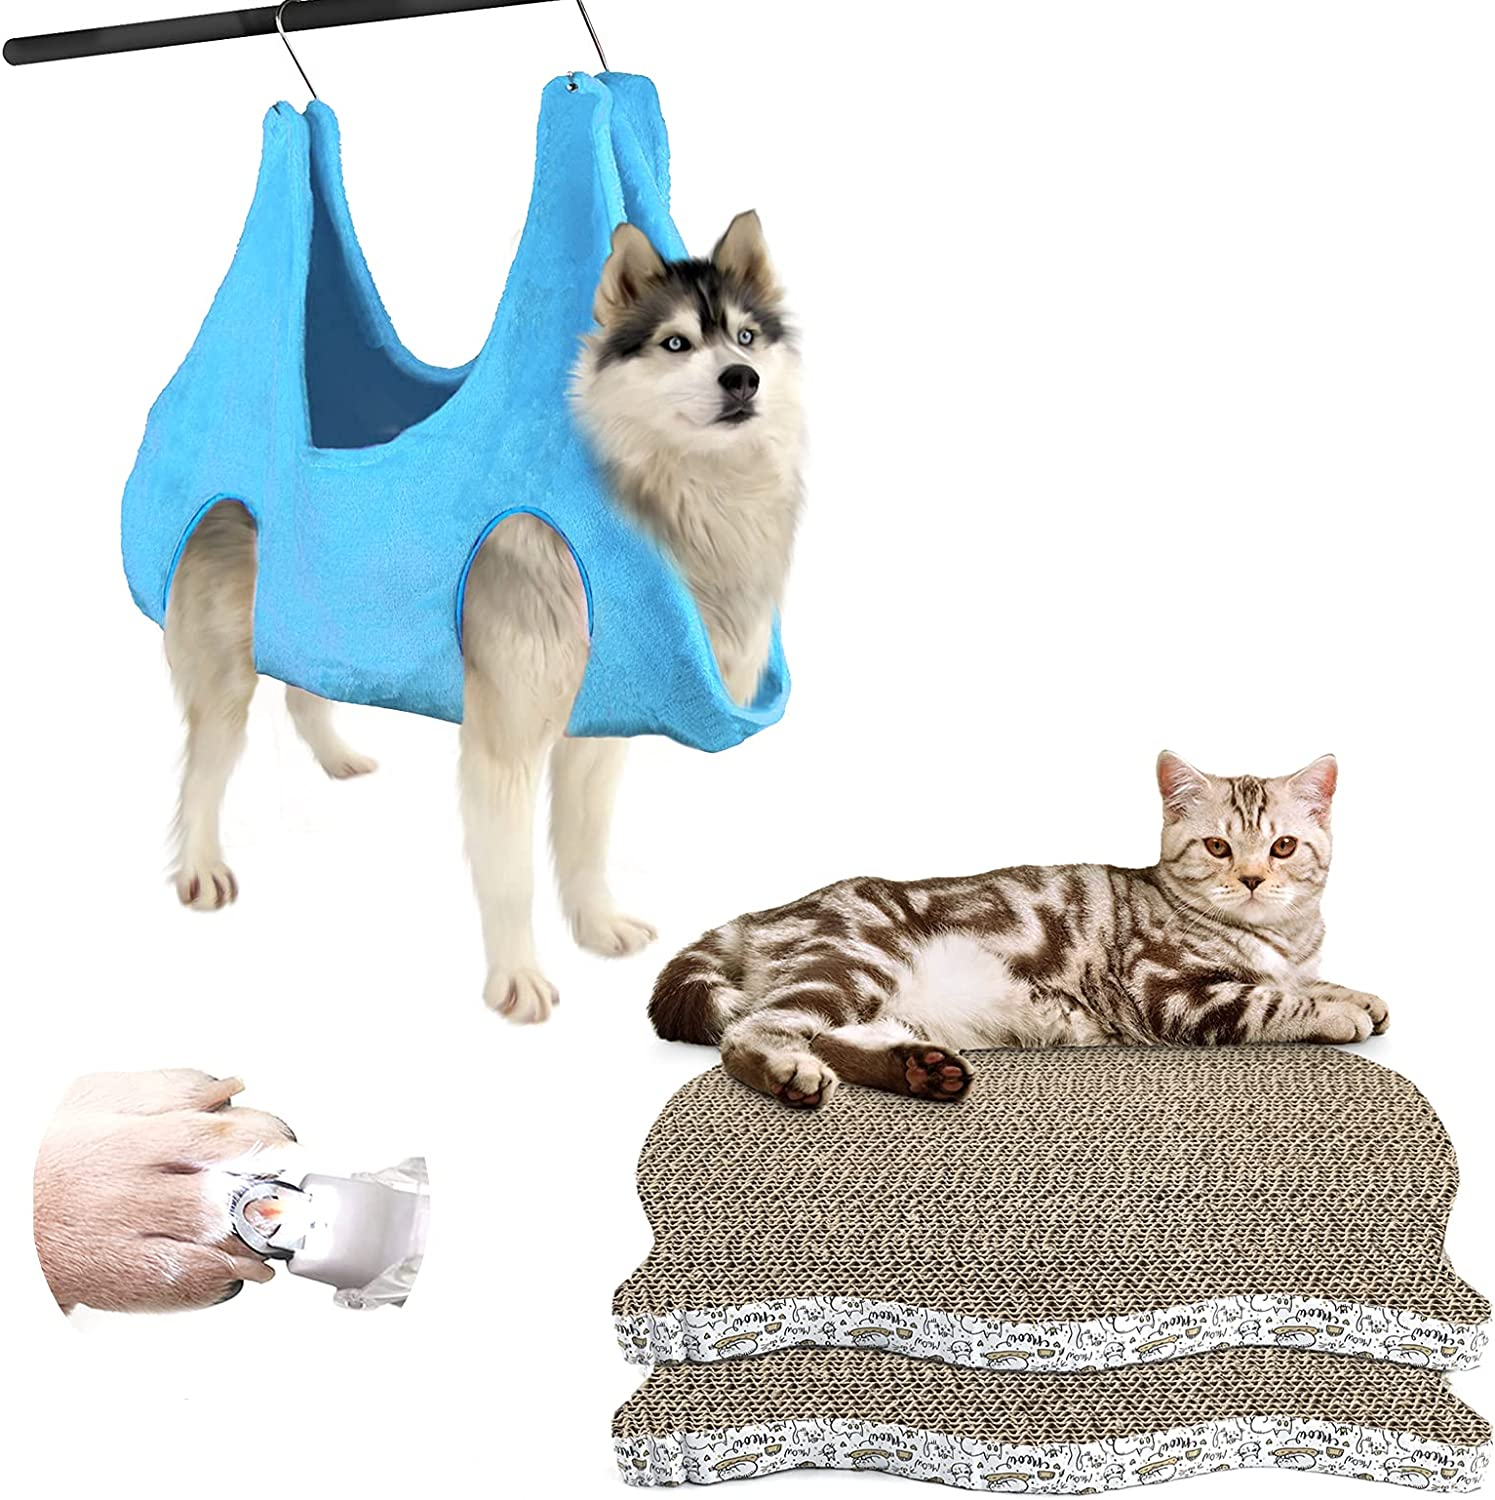 Dog Nail Harness Hanging L Size Purchase Pad Animer and price revision Cat N 2 Scratcher Pack